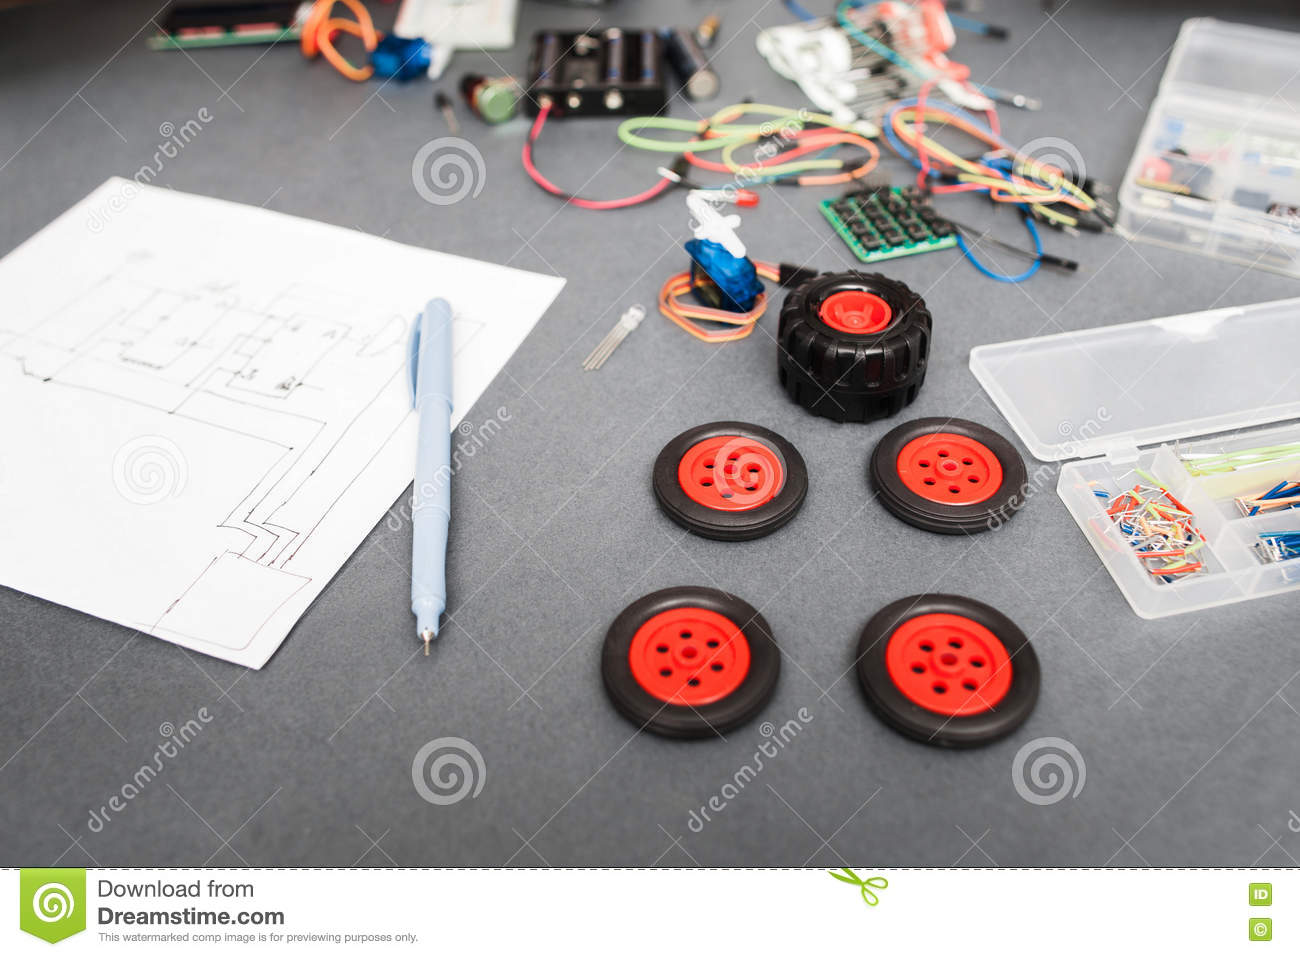 components and scheme of constructing car at home  engineer workplace with wiring  diagram and wheels for toy truck, diy modeling, modern technologies, hobby